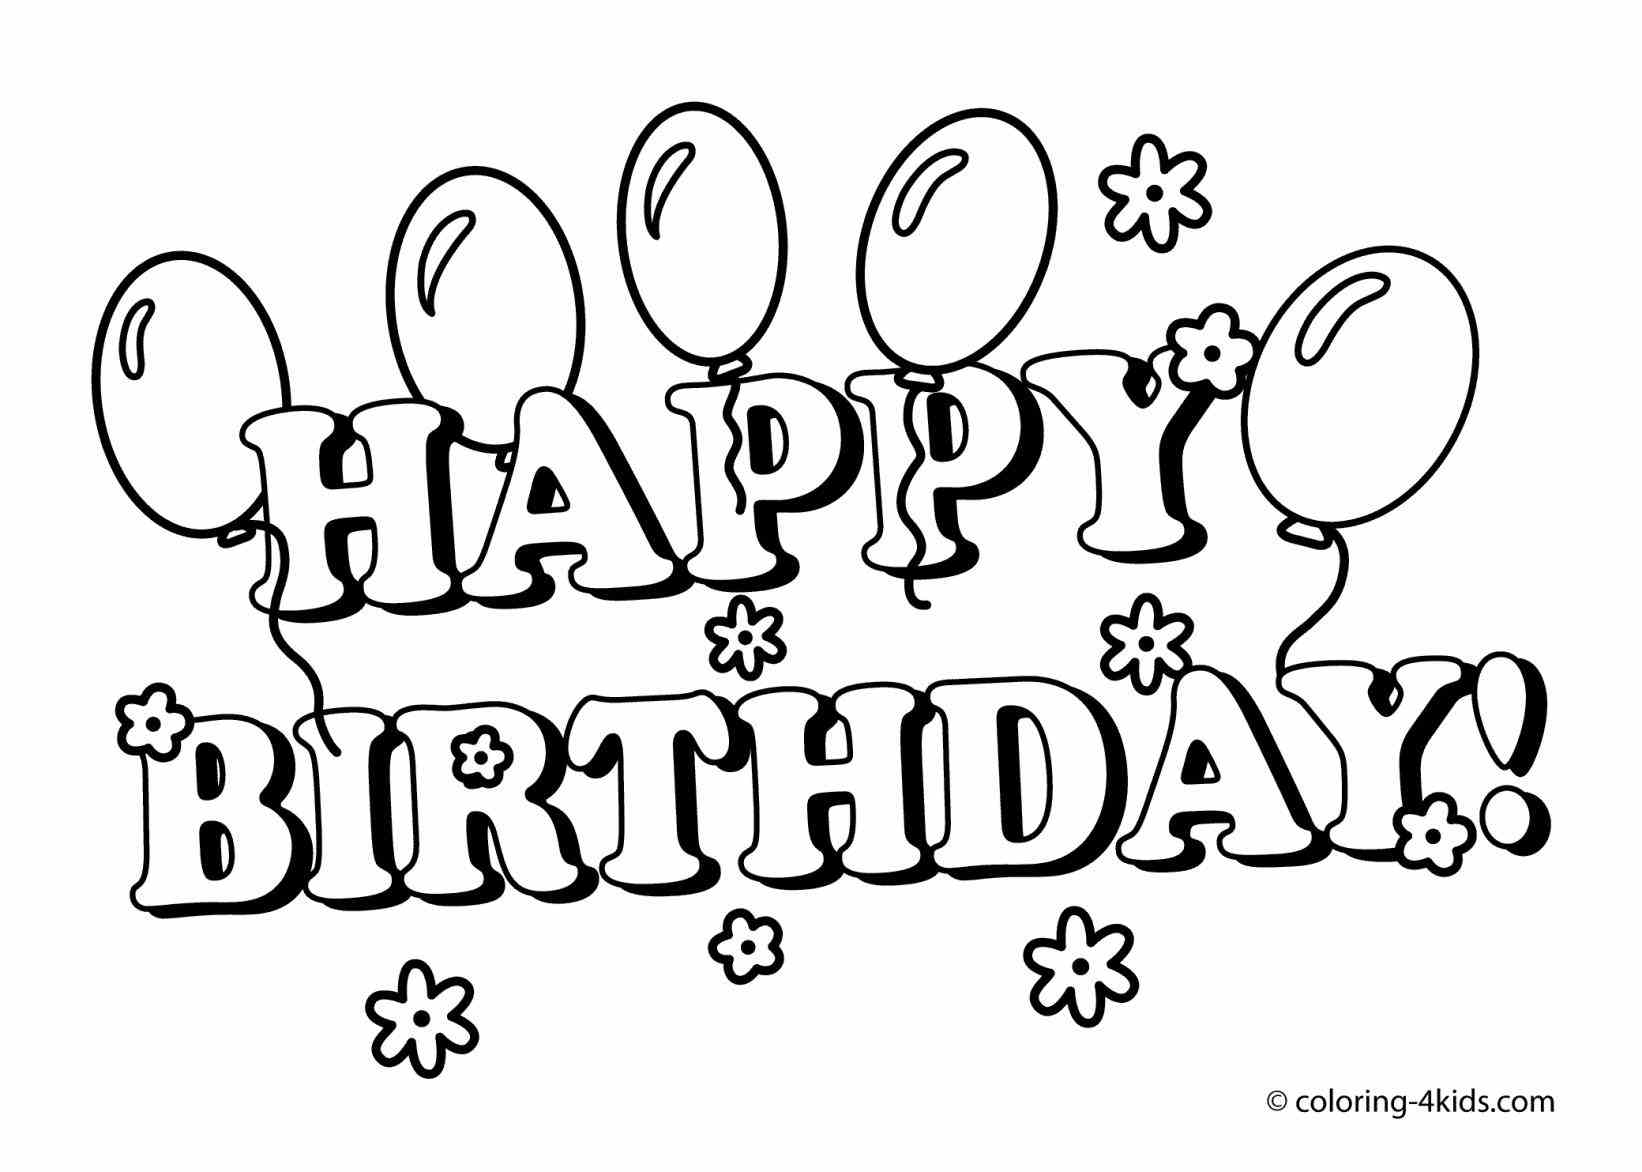 my little pony happy birthday coloring page ; coloring-pages-kids-little-pony-my-birthday-in-happy-color